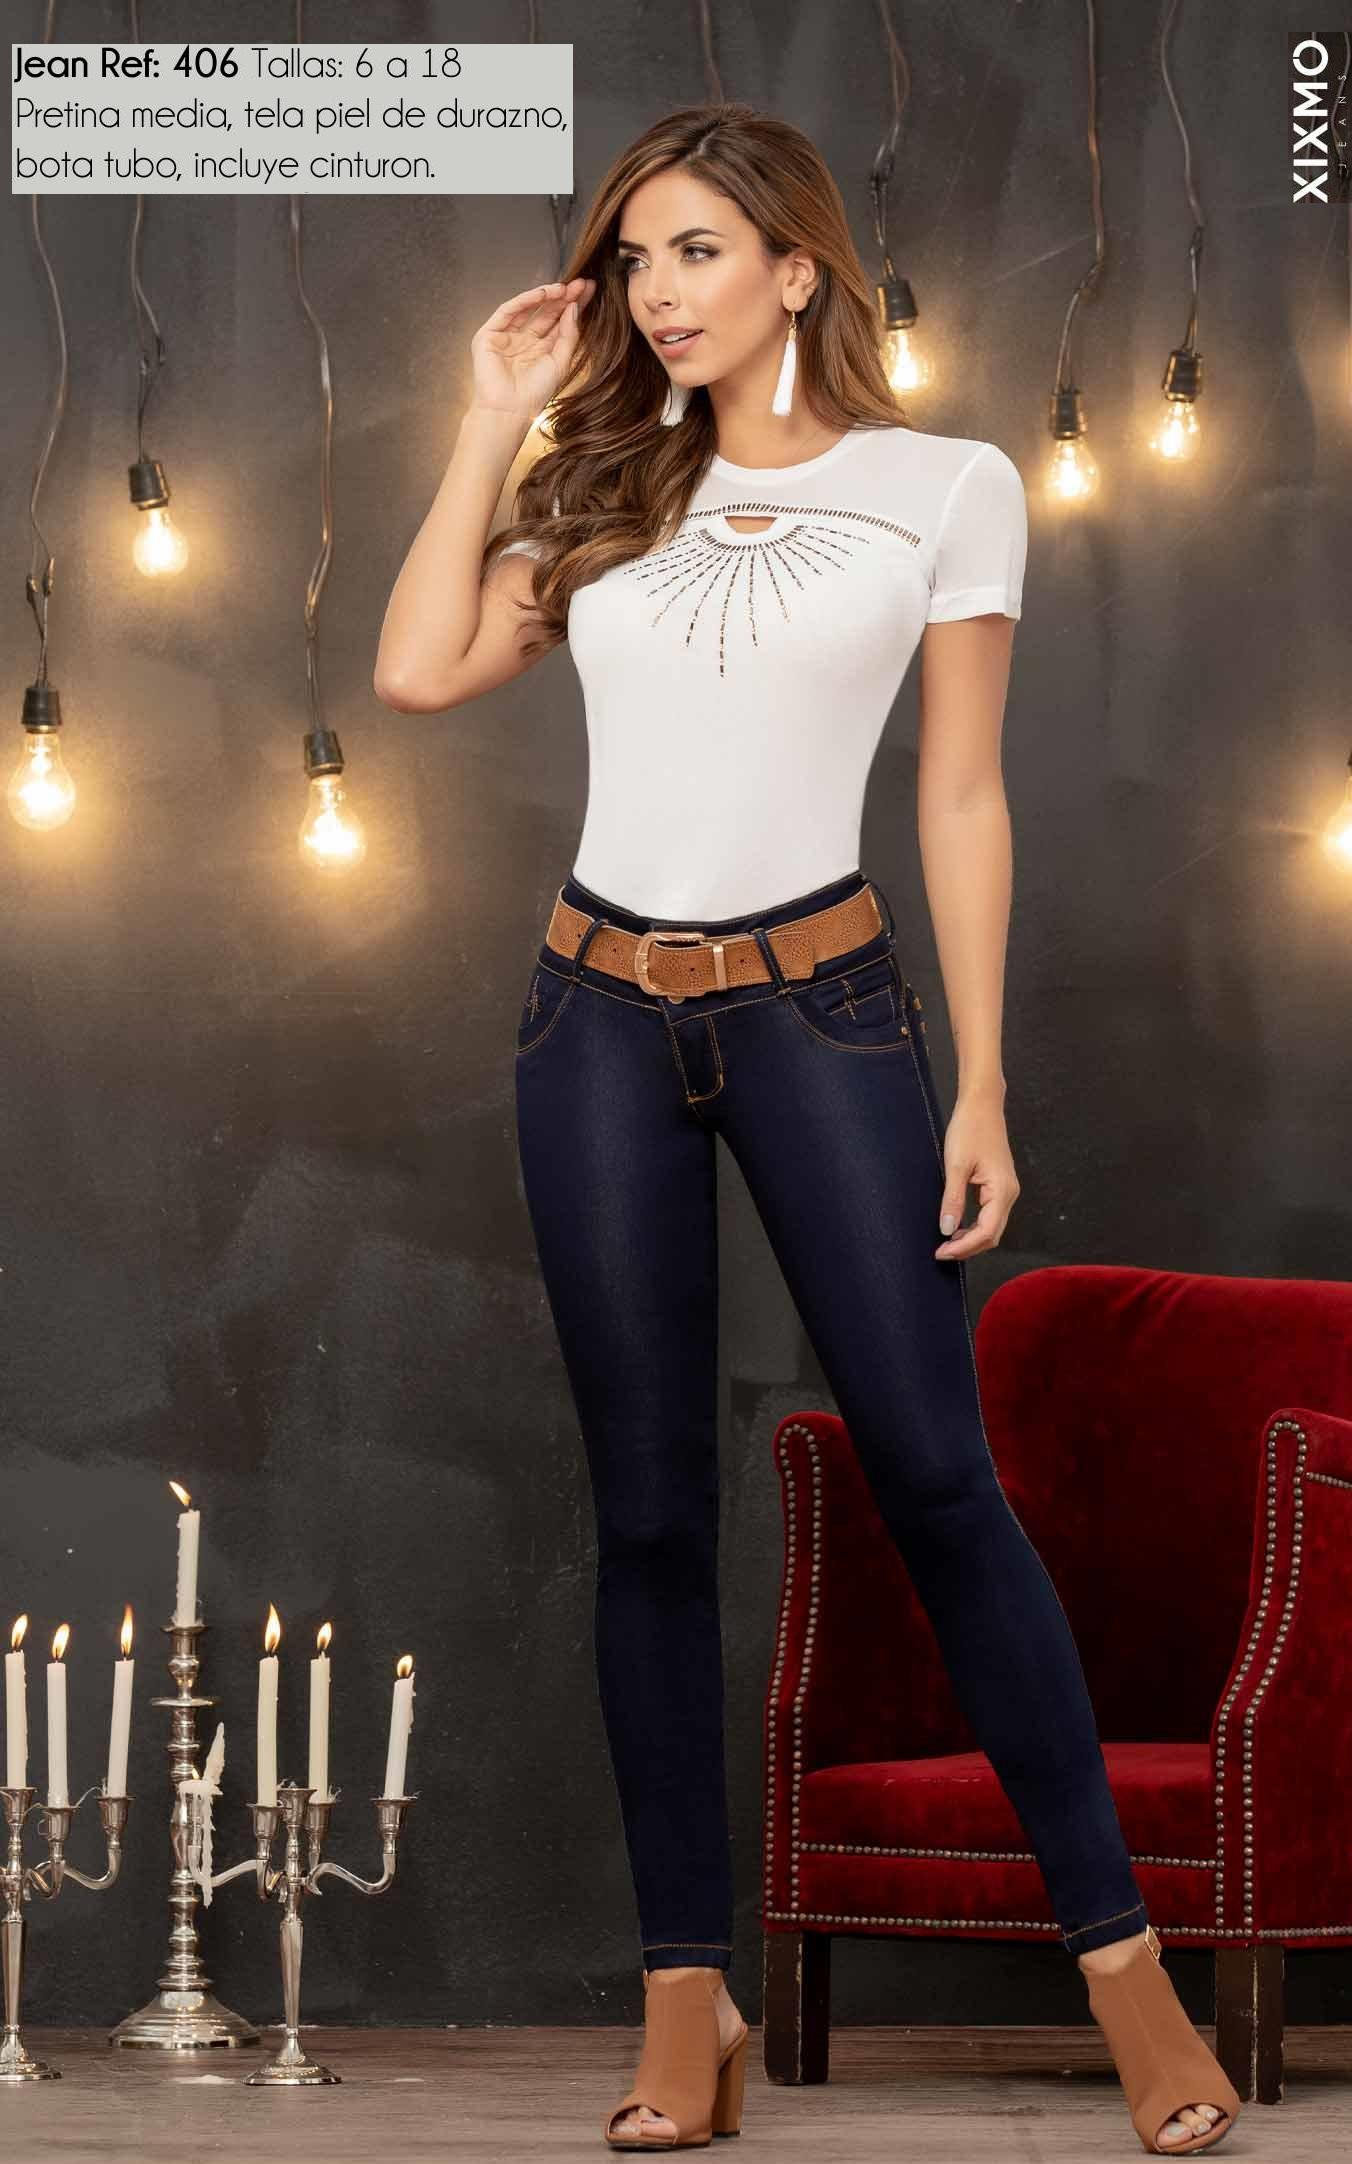 Pantalon jean vaquero dama push up